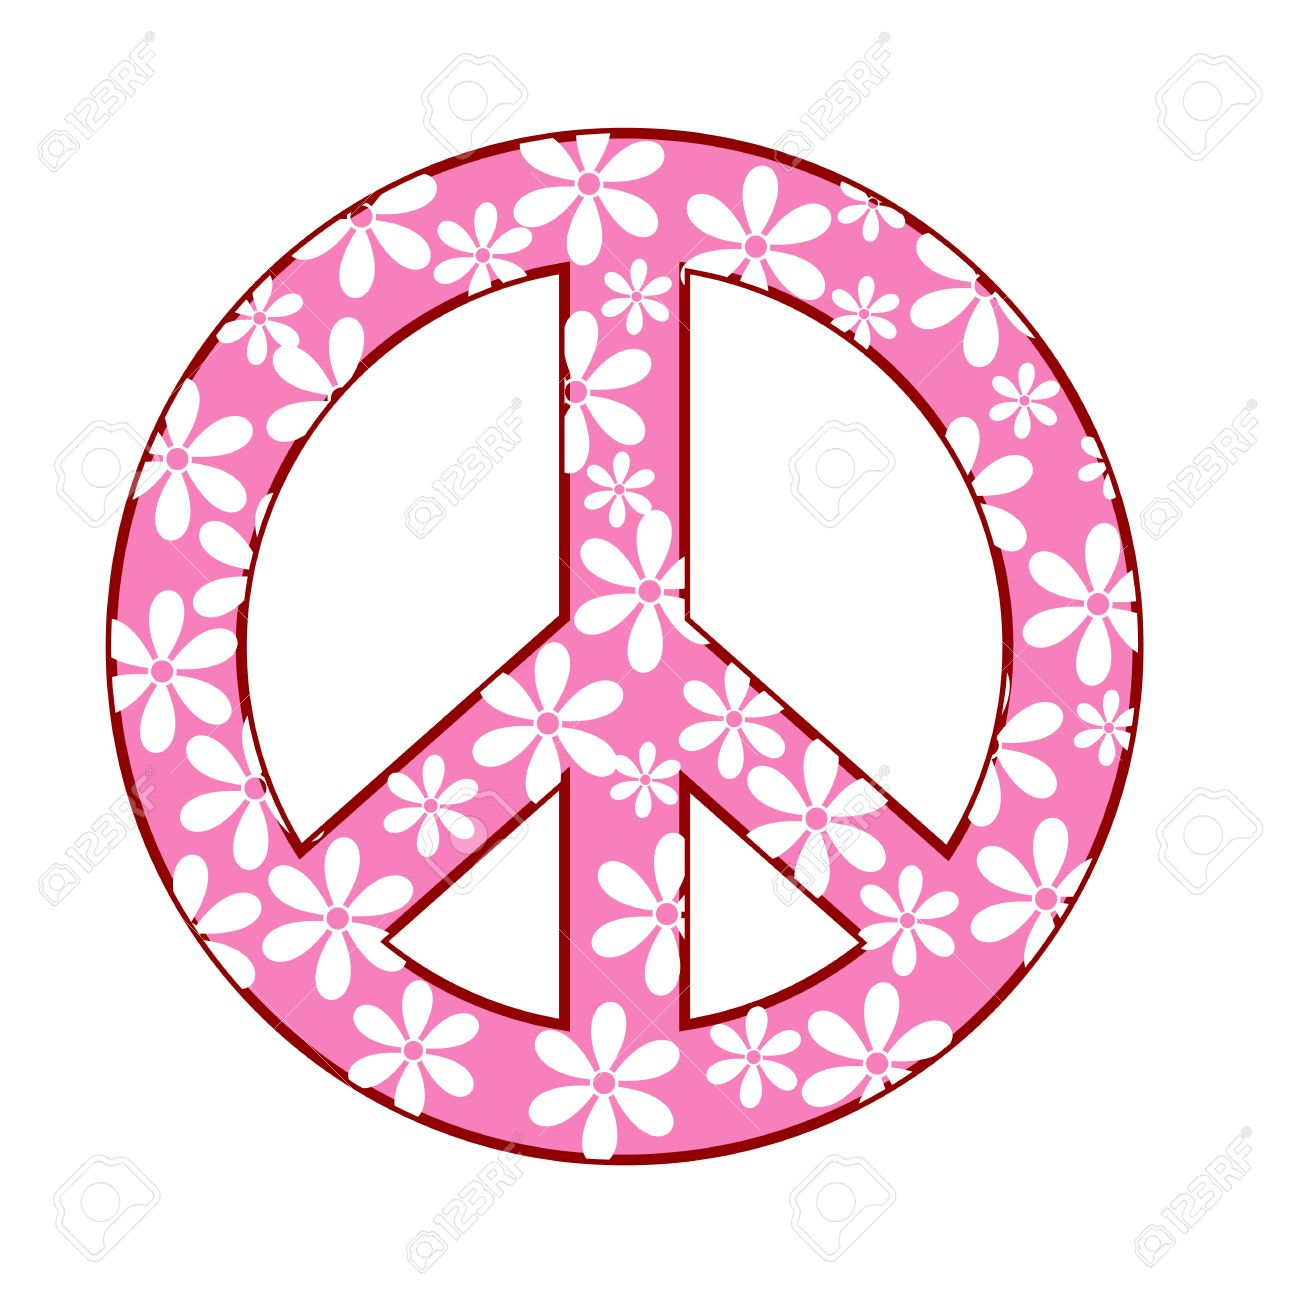 1300x1300 Illustration Of Peace Symbol With Floral Texture Royalty Free